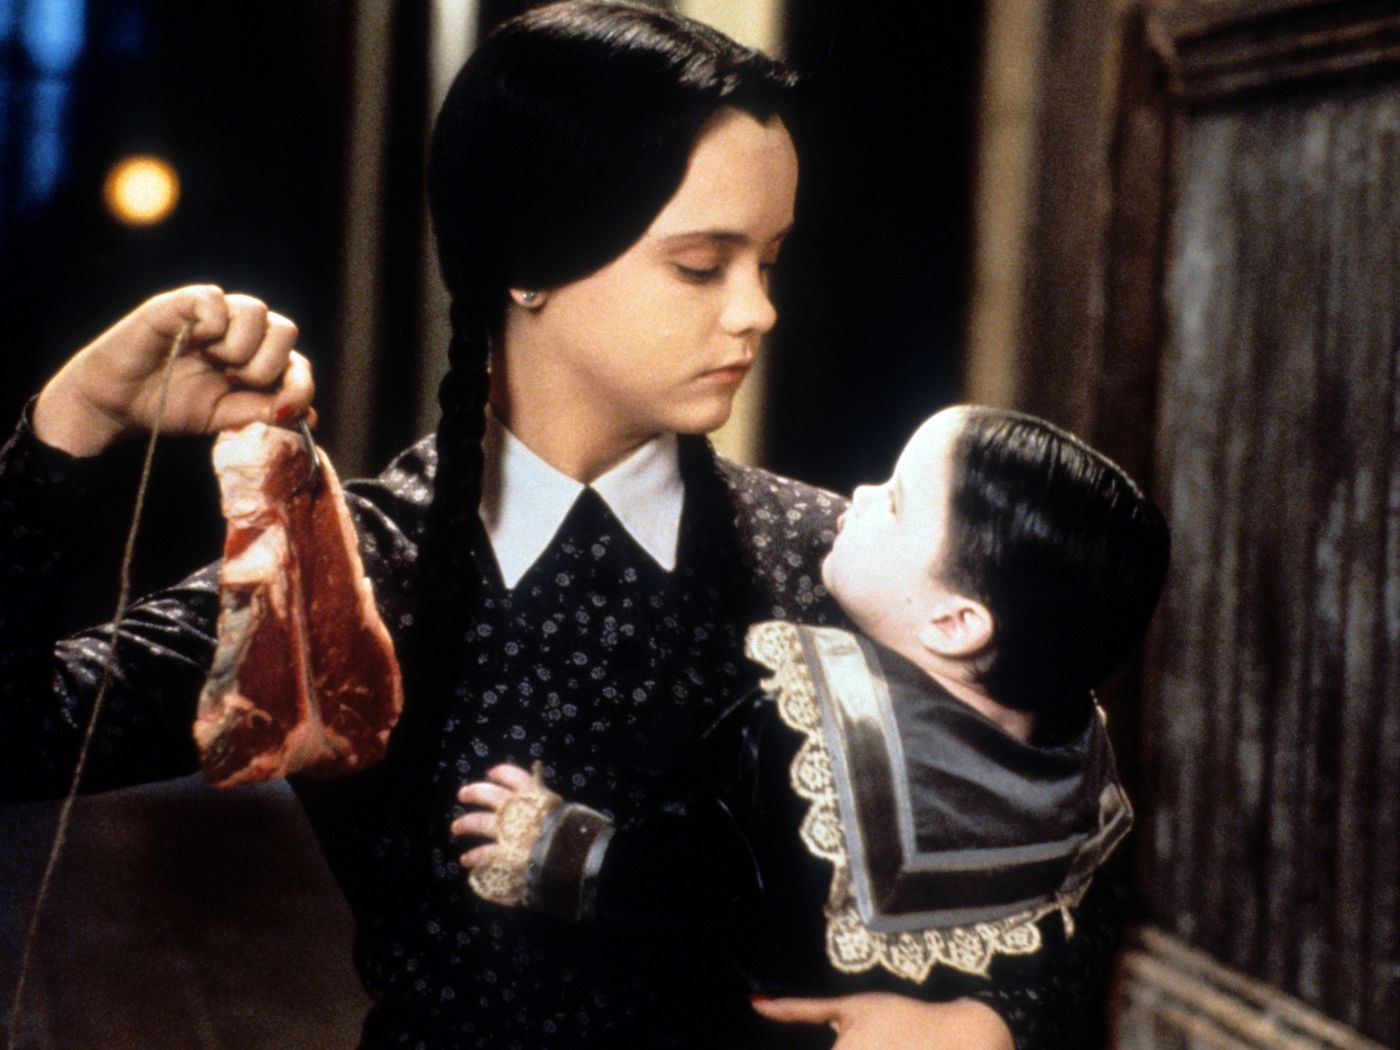 168597967.jpg.0 30 Creepy and Kooky Facts About Addams Family Values